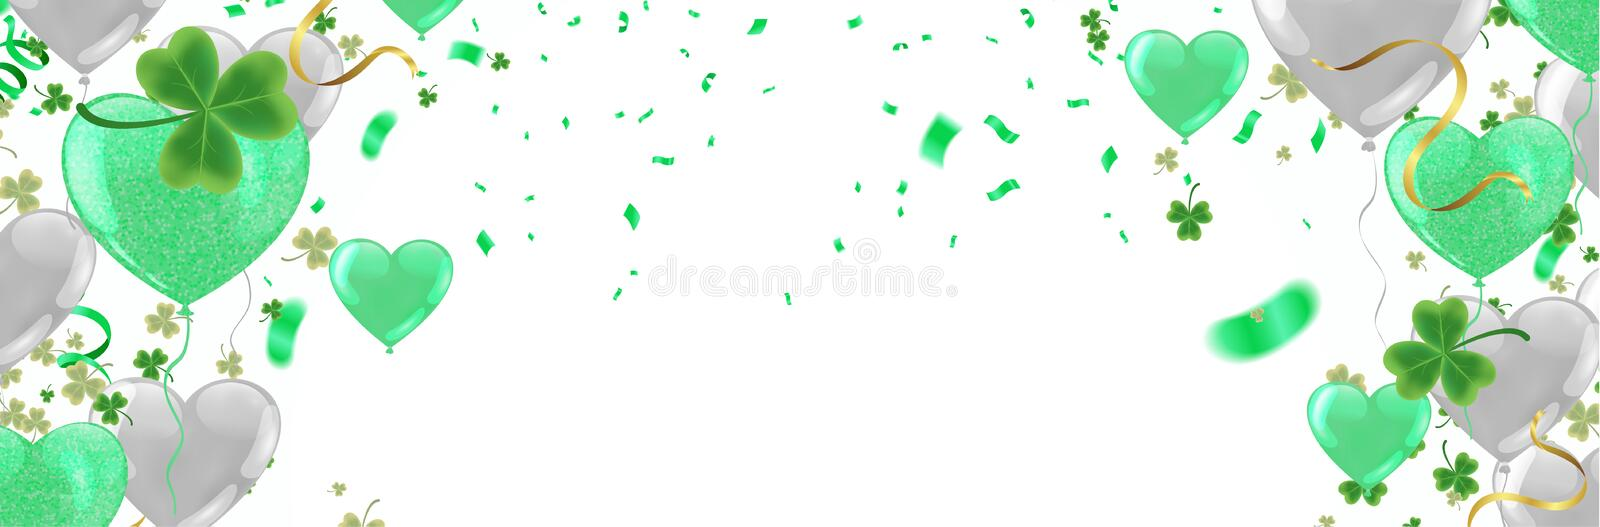 Party balloons illustration Clover leaves decorated transparent background of St Patrick`s Day. Poster or banner design stock illustration